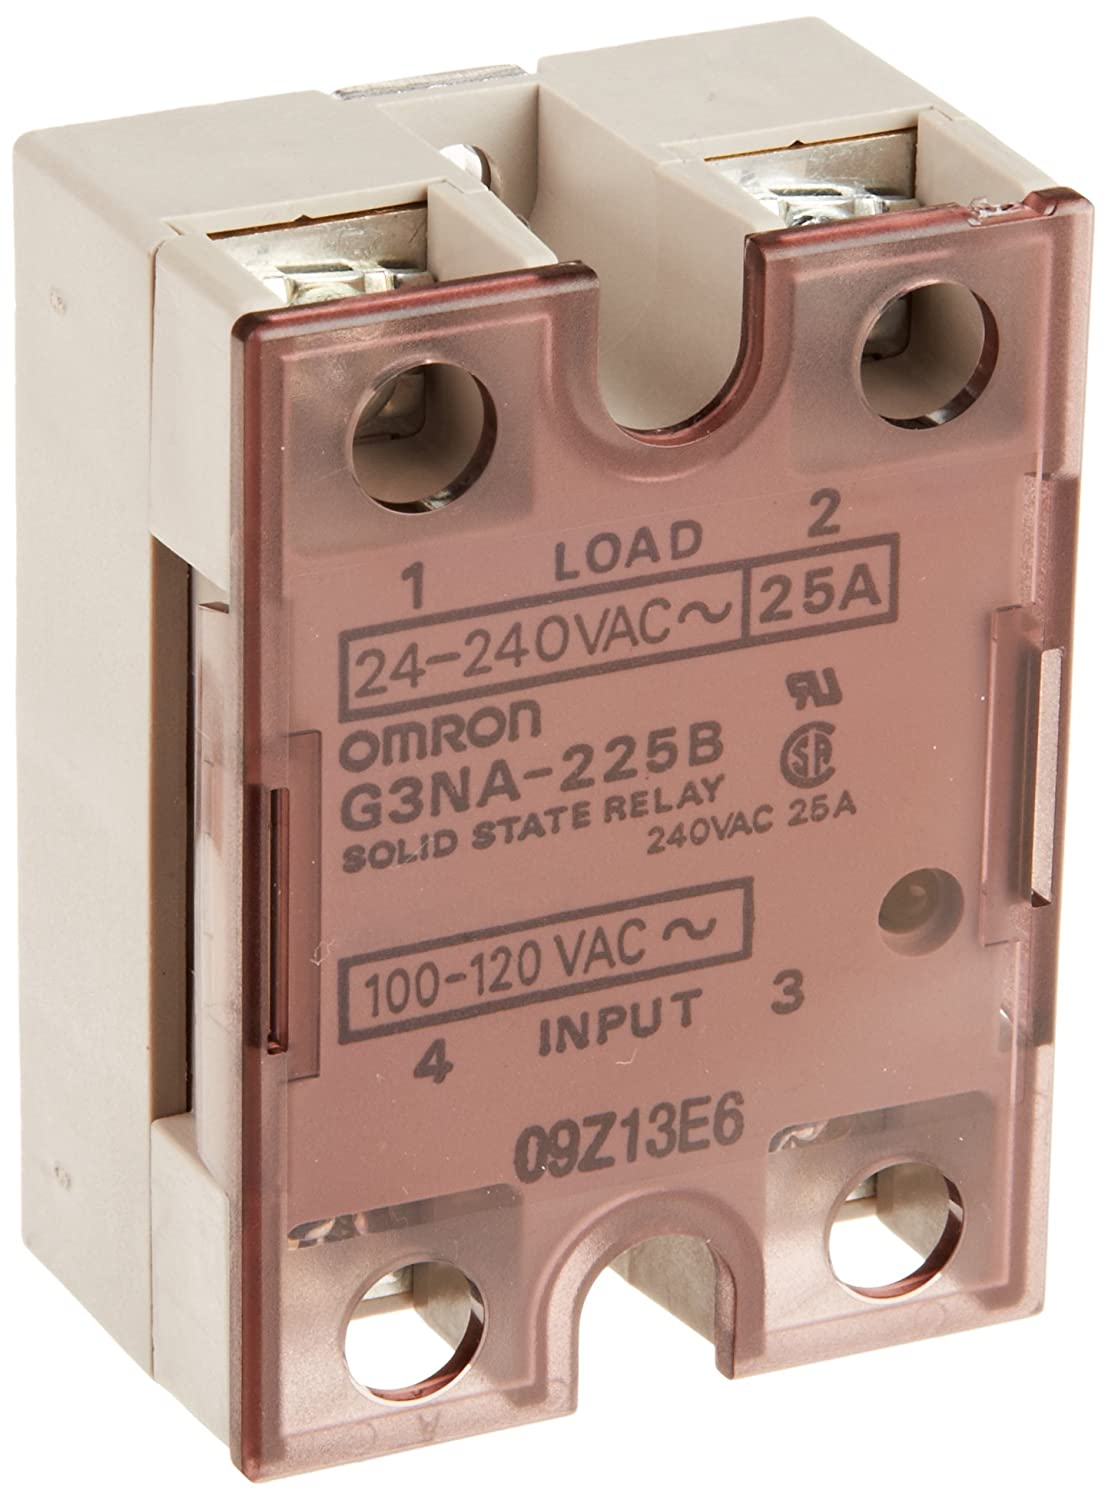 Omron G3NA-225B AC100-120 Solid State Relay, Zero Cross Function, Yellow  Indicator, Photocoupler Isolation, 25 A Rated Load Current, 24 to 240 VAC